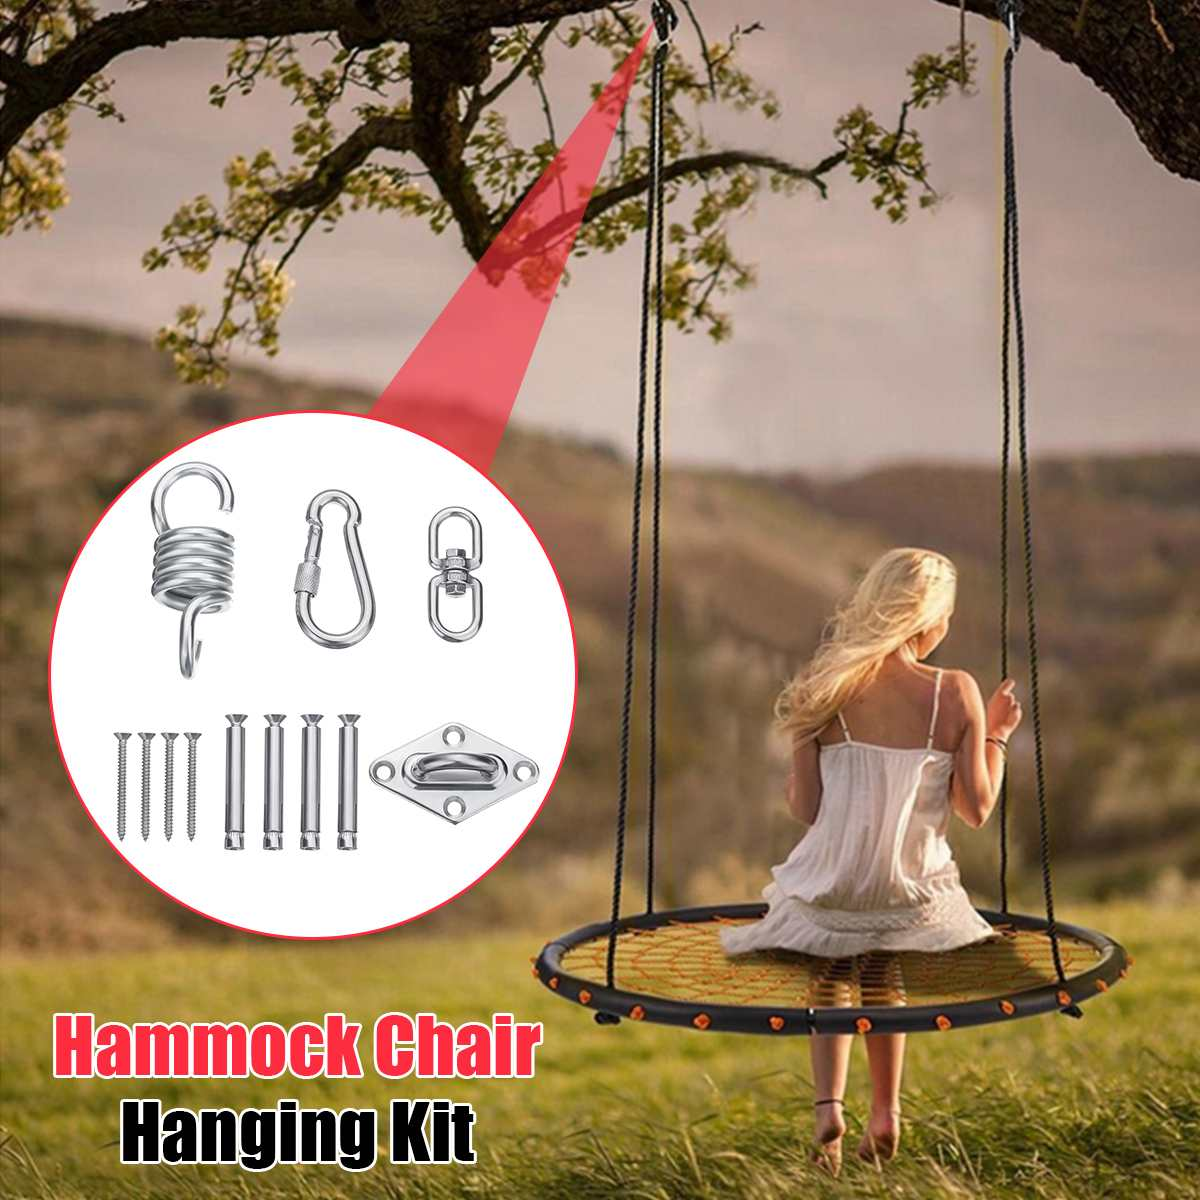 Stainless Steel Hammock Chair Swing Chair Hanging Kit Ceiling Mount Spring Swivel Snap Hook Camping Accessories Outdoor Tools